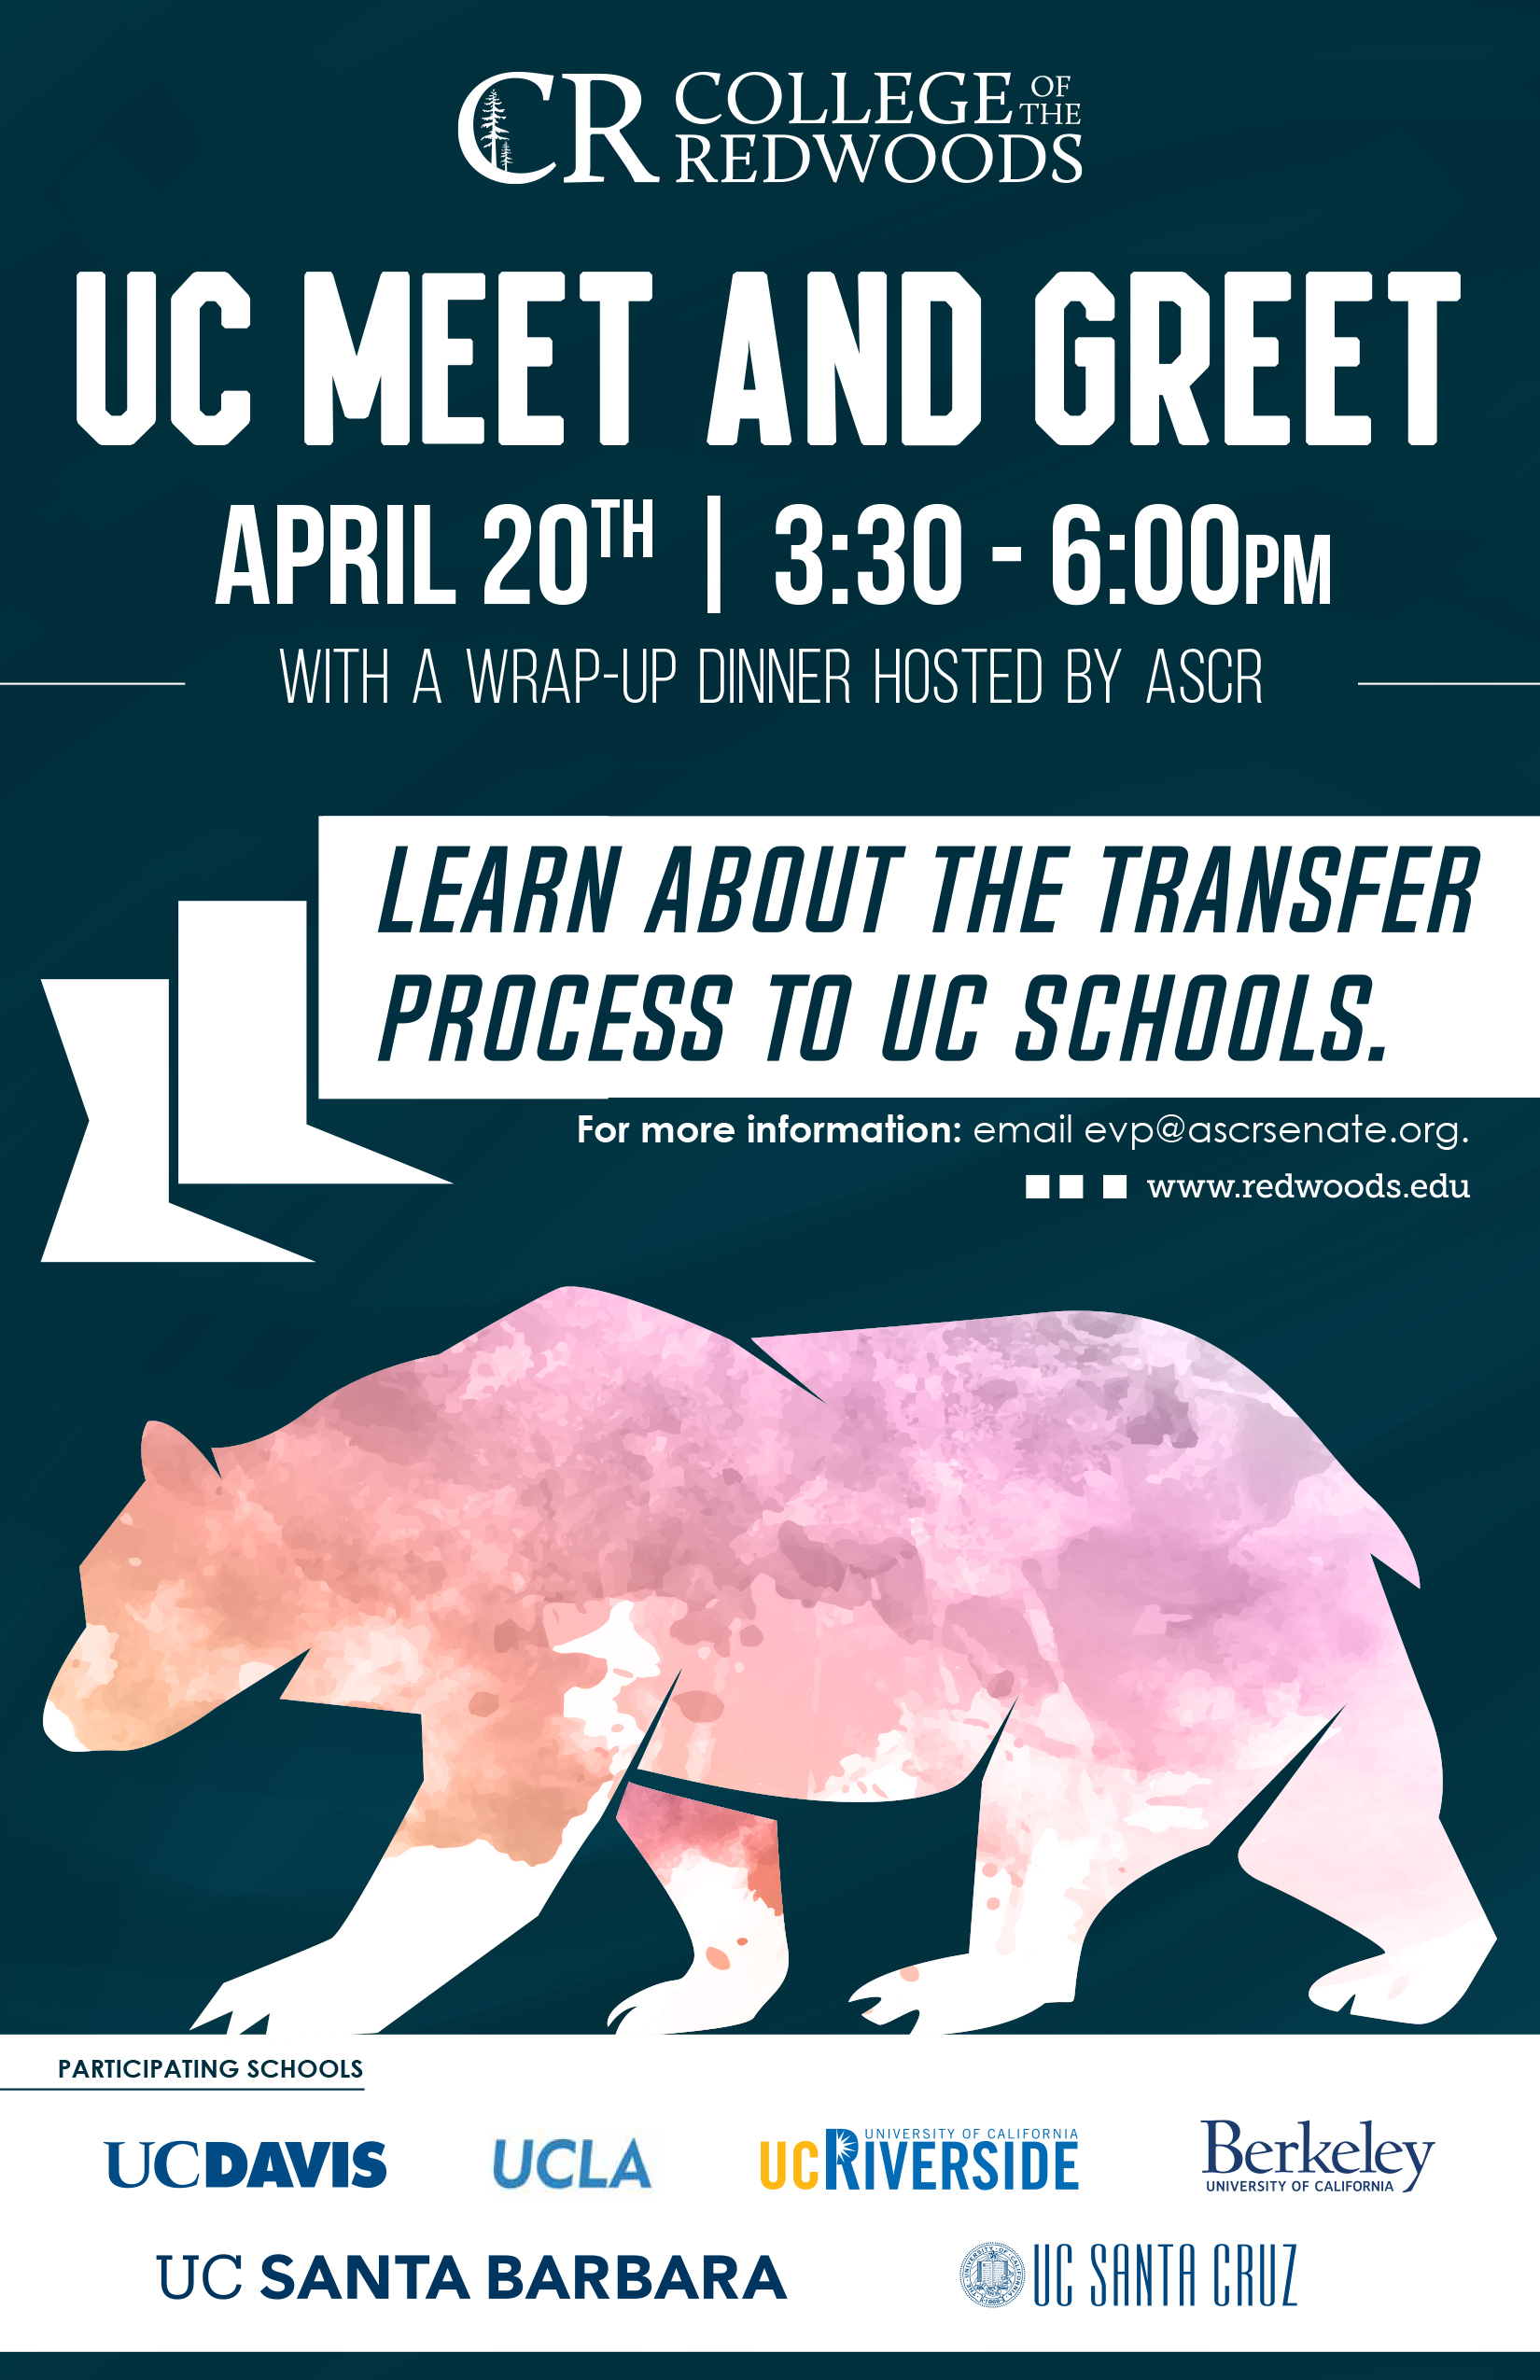 College of the redwoods holds uc meet and greet m4hsunfo